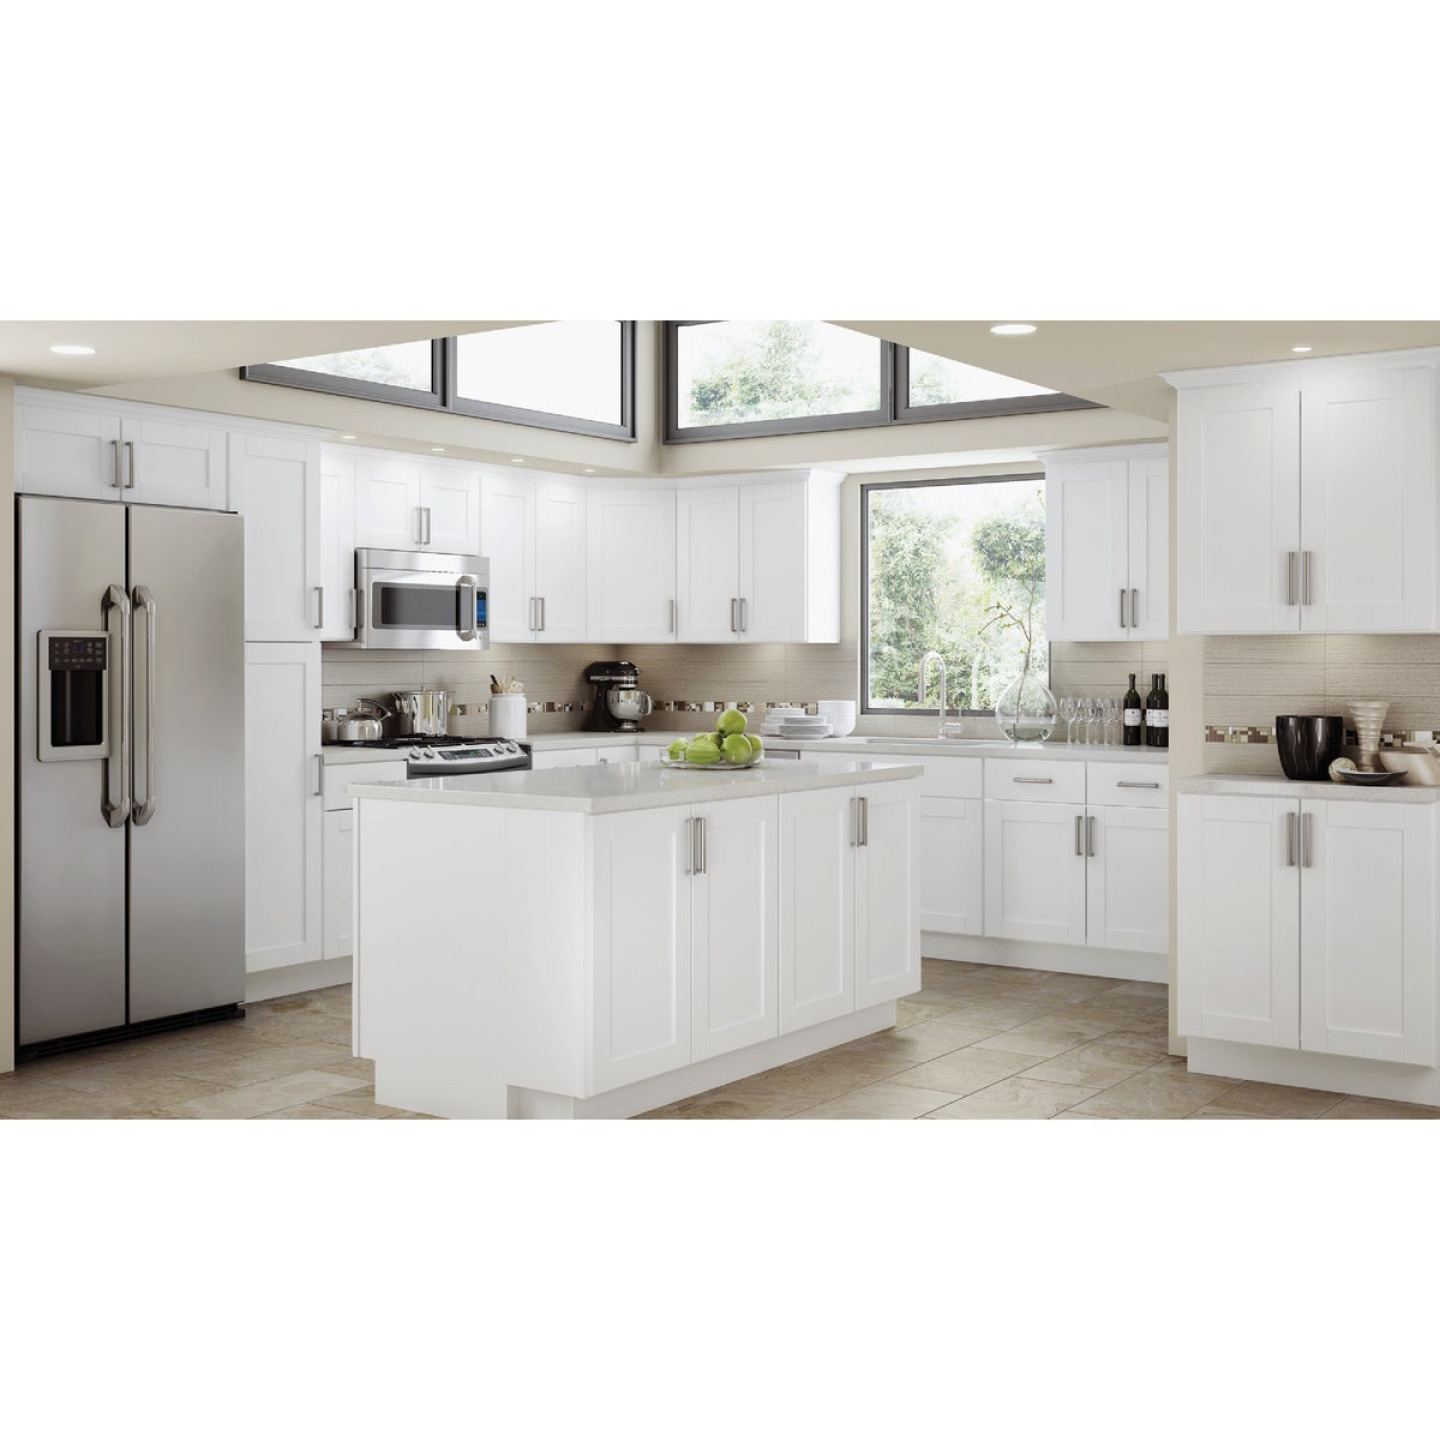 Continental Cabinets Andover Shaker 15 In. W x 30 In. H x 12 In. D White Thermofoil Wall Kitchen Cabinet Image 2